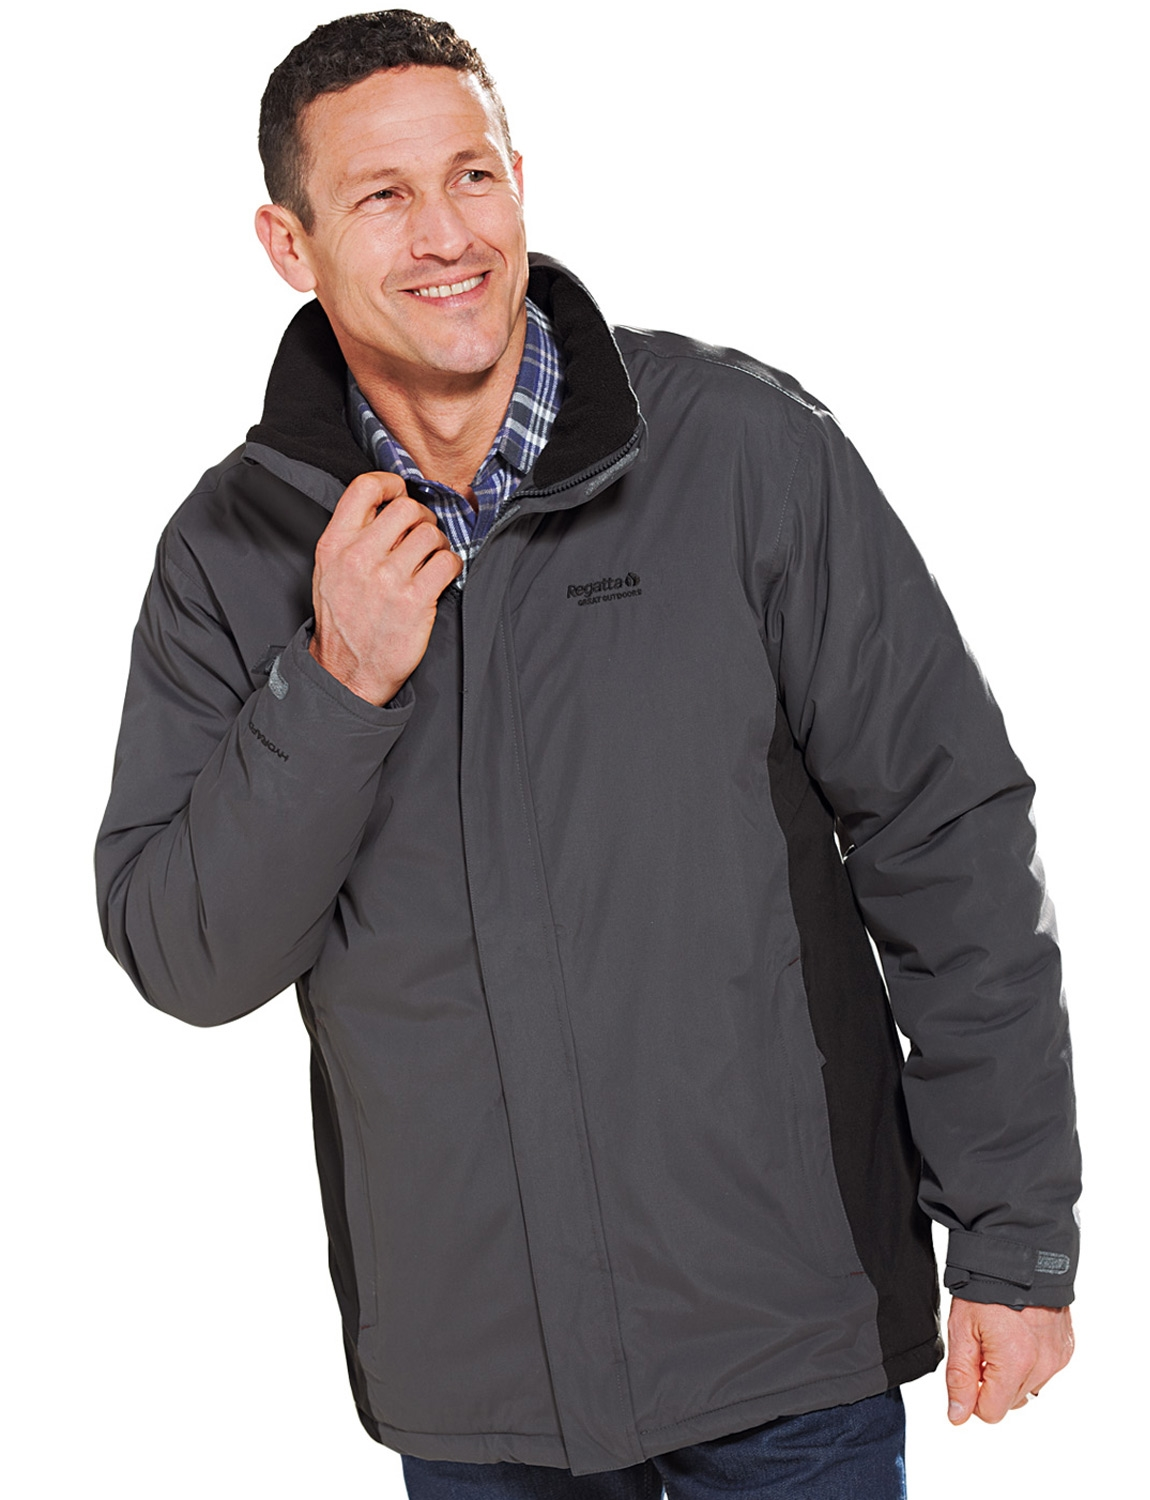 Regatta Waterproof Jacket | Chums